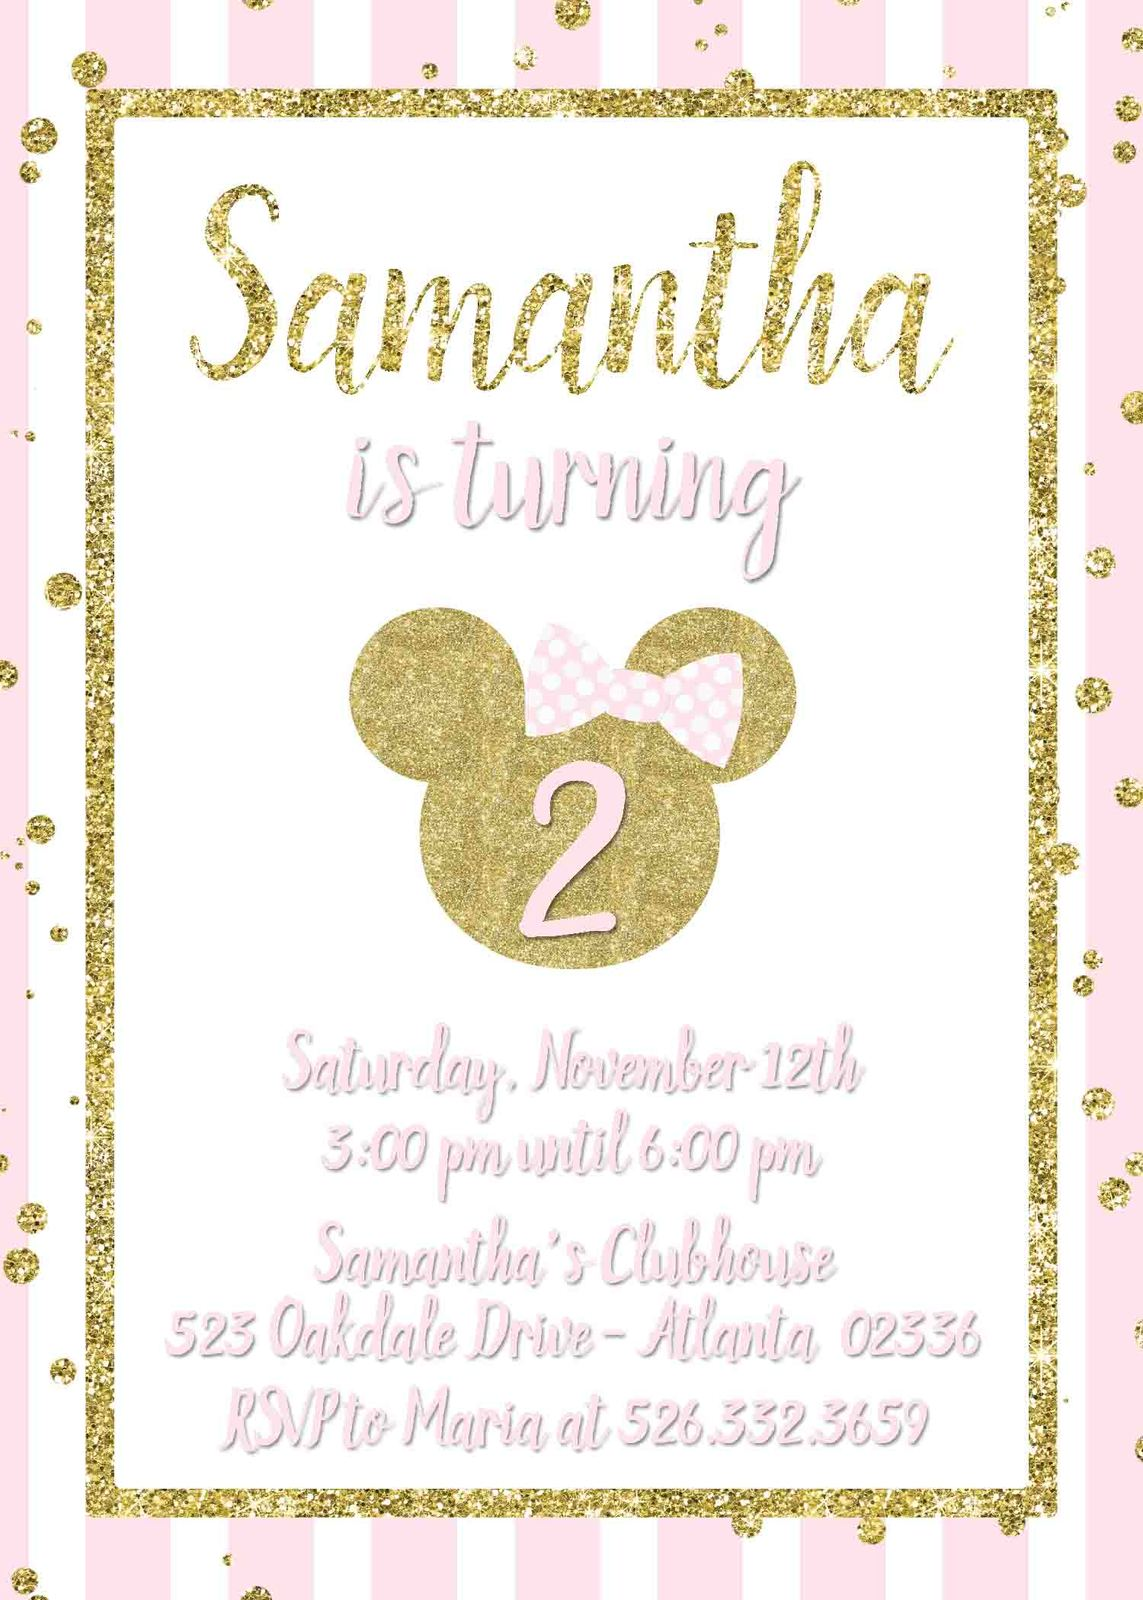 Ralph lauren baby shower invitations image bathroom 2017 printable minnie mouse gold pink and 50 similar items kristyandbryce Gallery